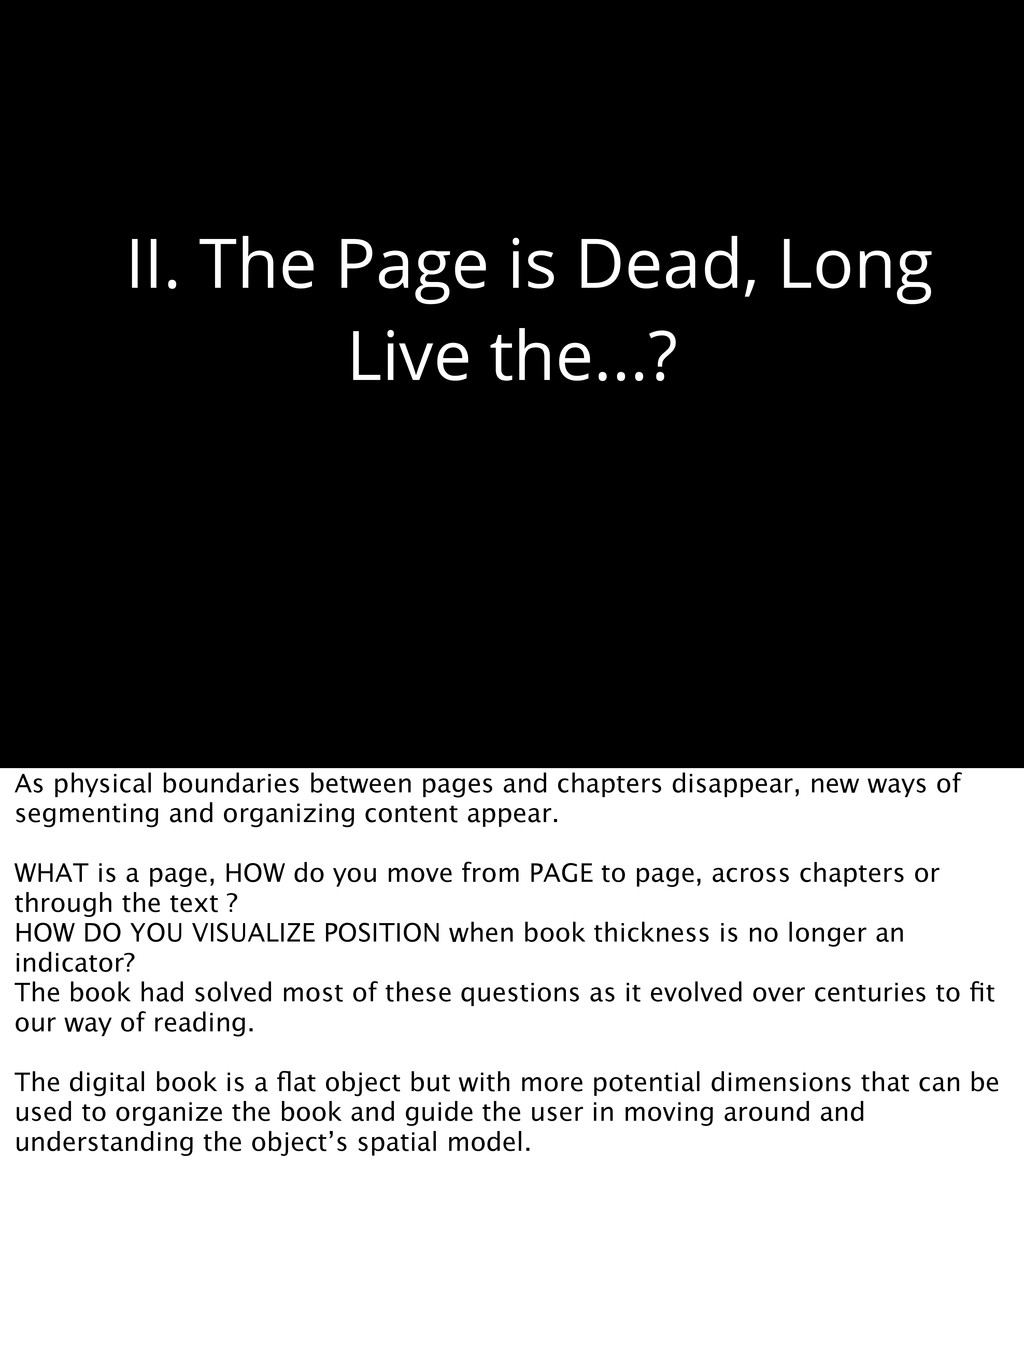 II. The Page is Dead, Long Live the...? As phys...